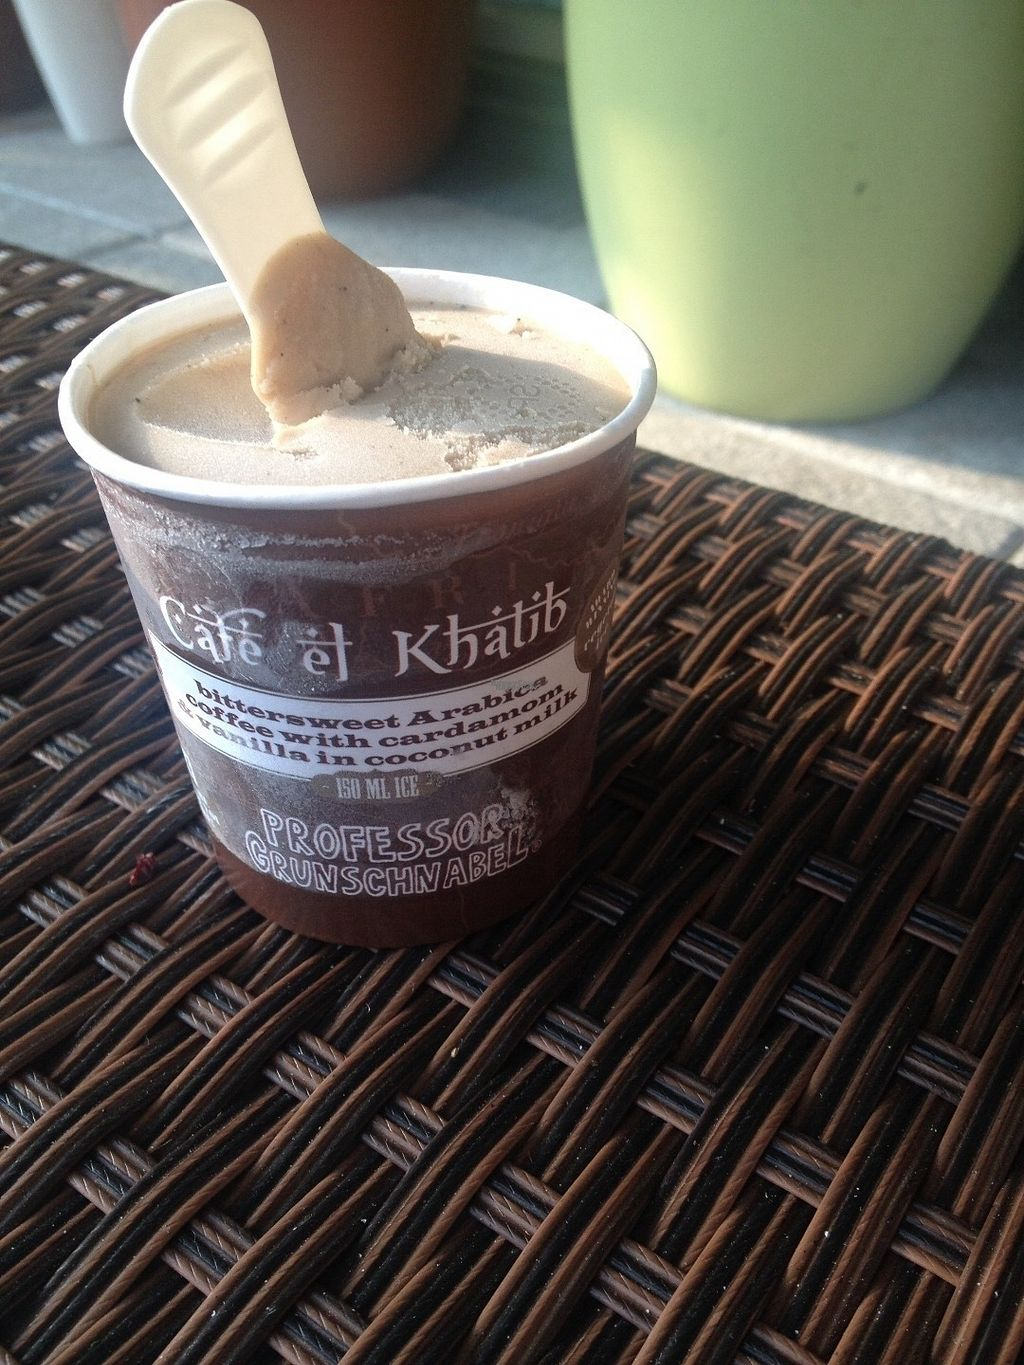 """Photo of Veganz - Schivelbeiner Strasse  by <a href=""""/members/profile/o0Carolyn0o"""">o0Carolyn0o</a> <br/>Delicious coffee nice cream with cardamon that they have in the frozen section! <br/> October 5, 2016  - <a href='/contact/abuse/image/27300/179853'>Report</a>"""